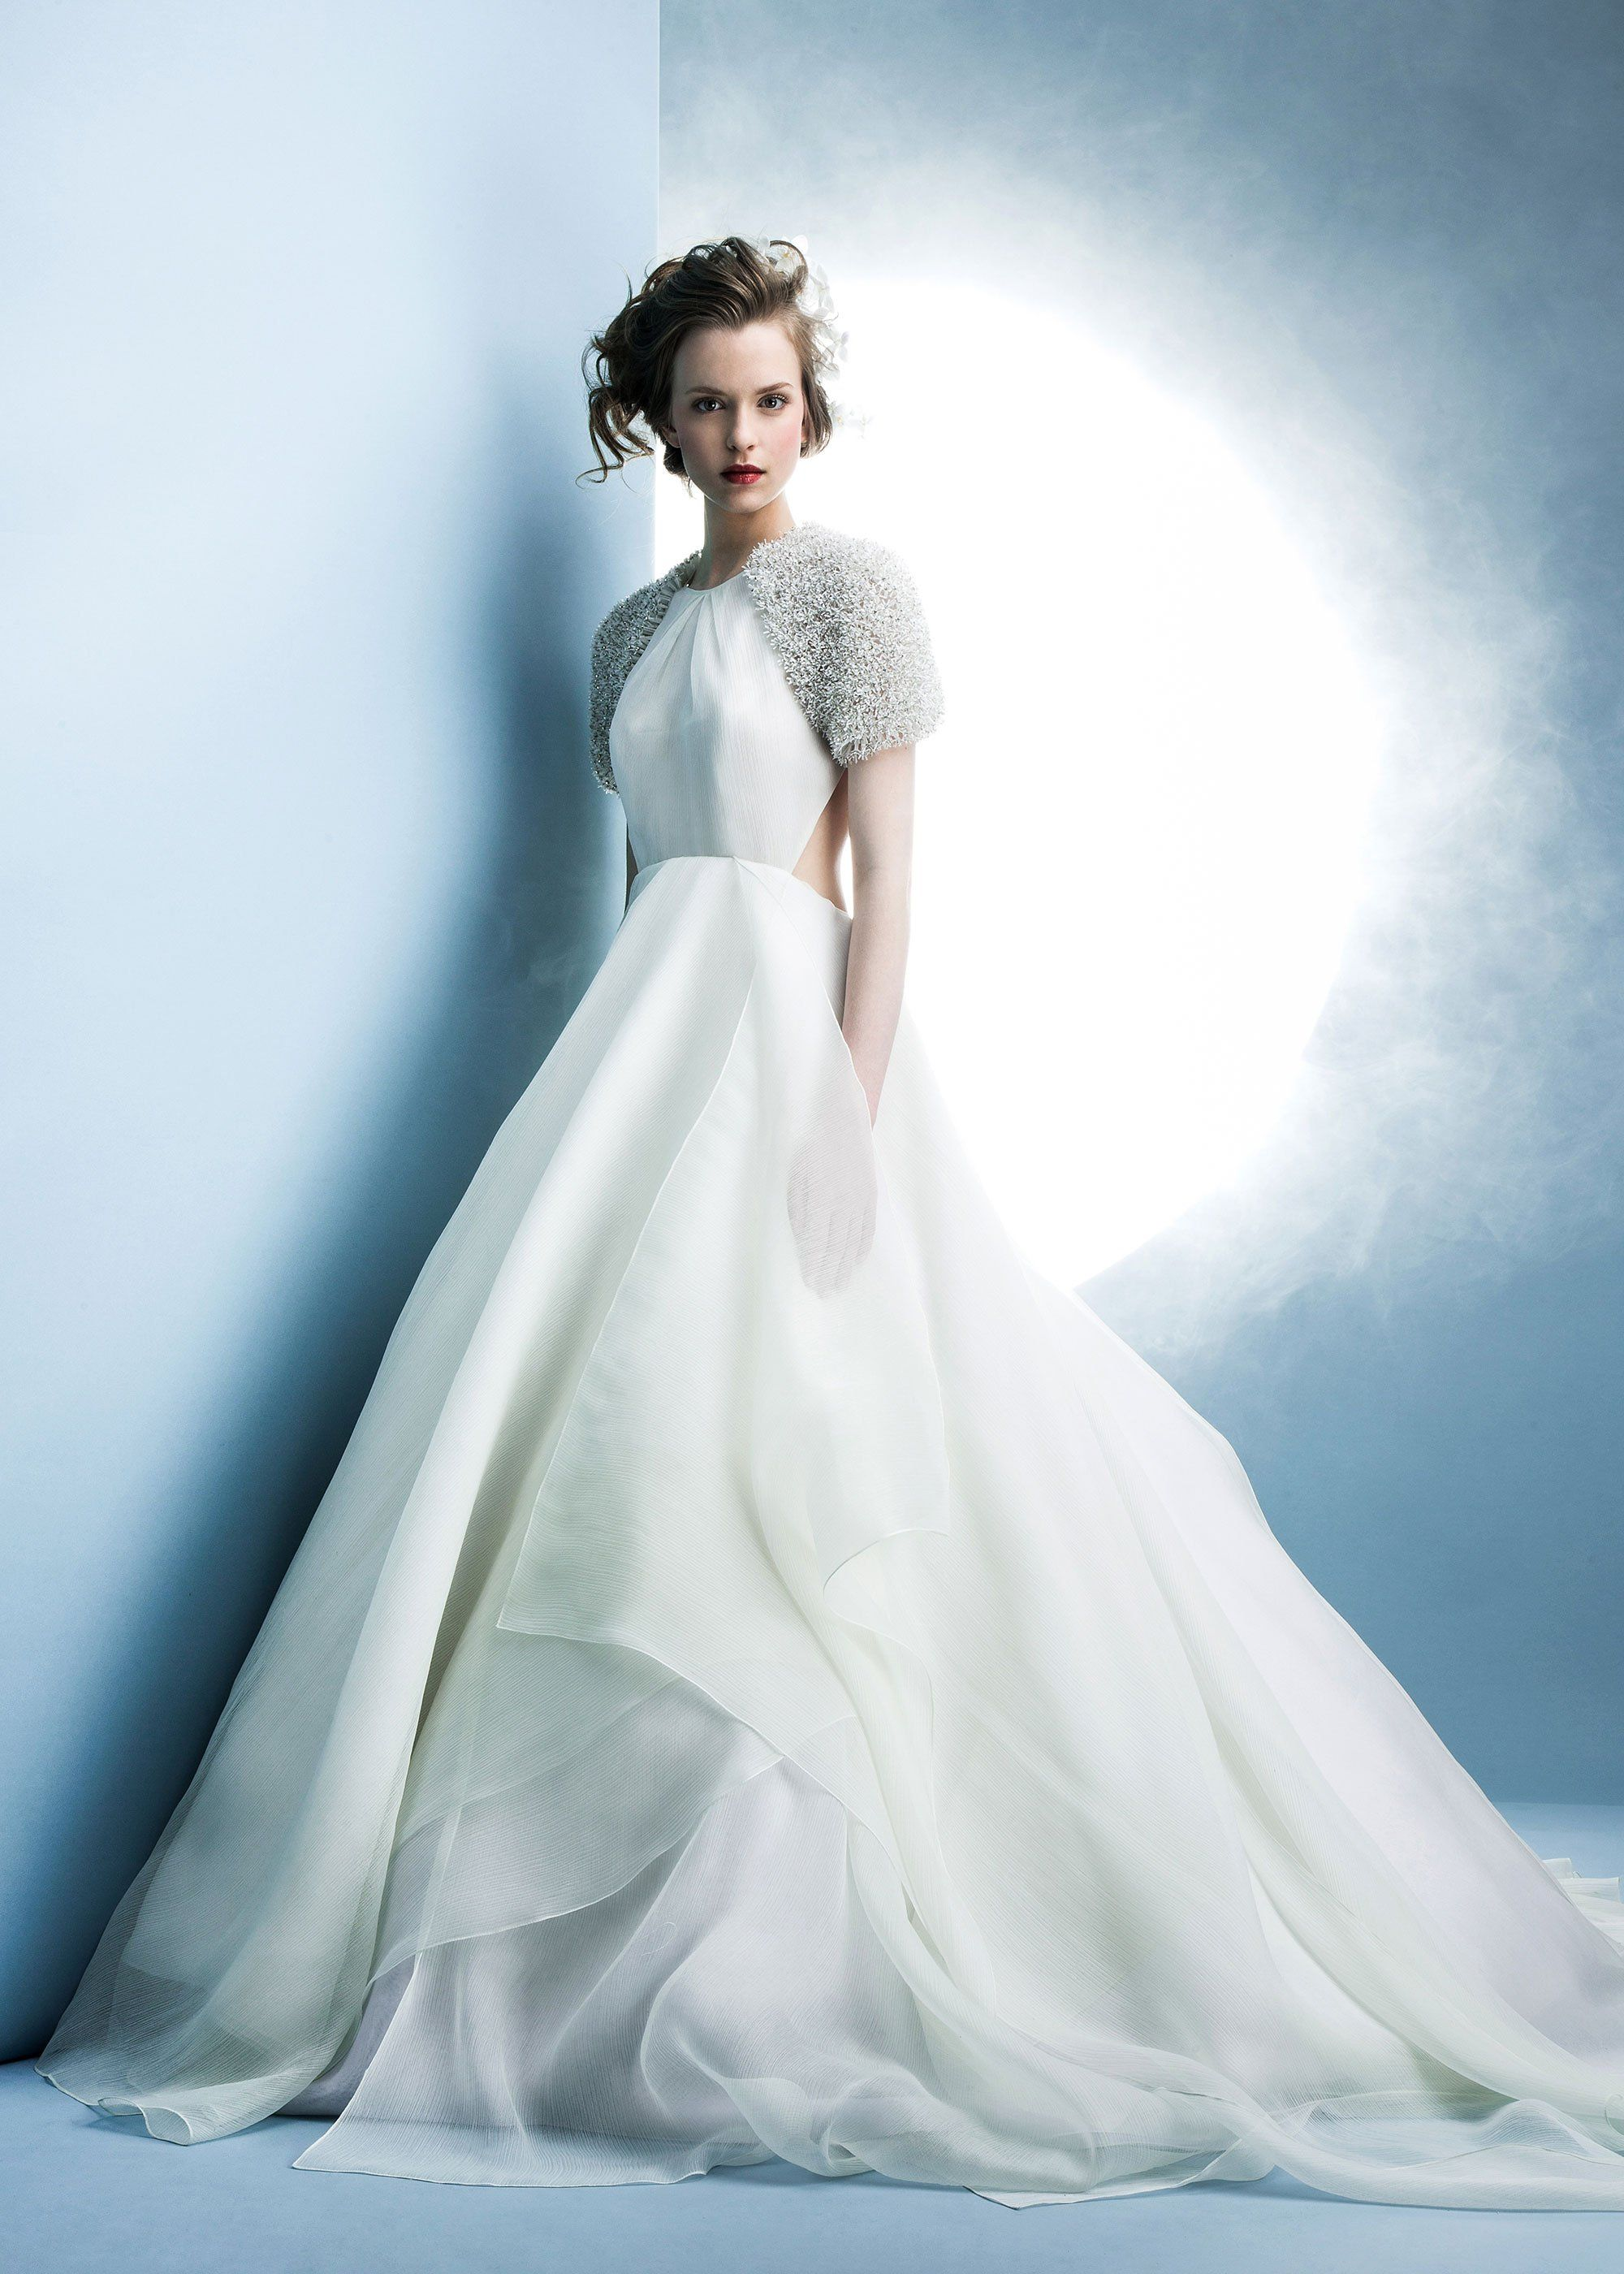 New The 10 All Time Best Home Decor In The World What You Think About This Best Inspiration Wedding Dresses Corset Wedding Dress Couture Wedding Dresses